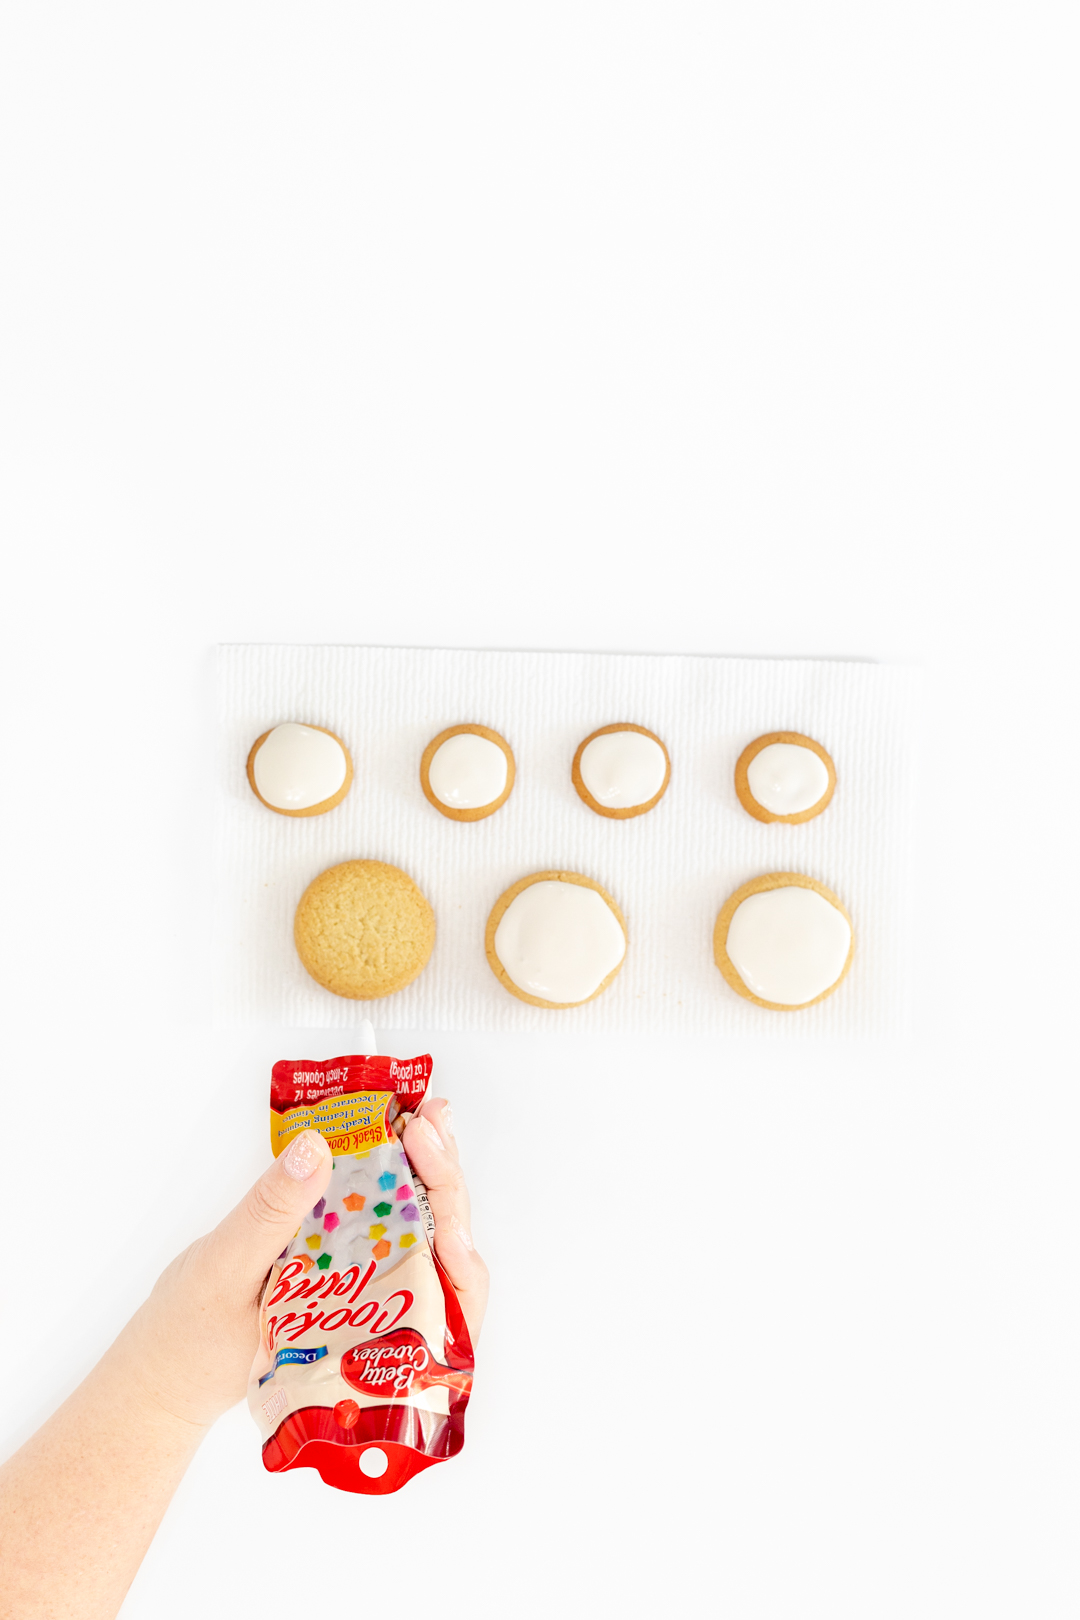 adding cookie icing to store-bought cookies